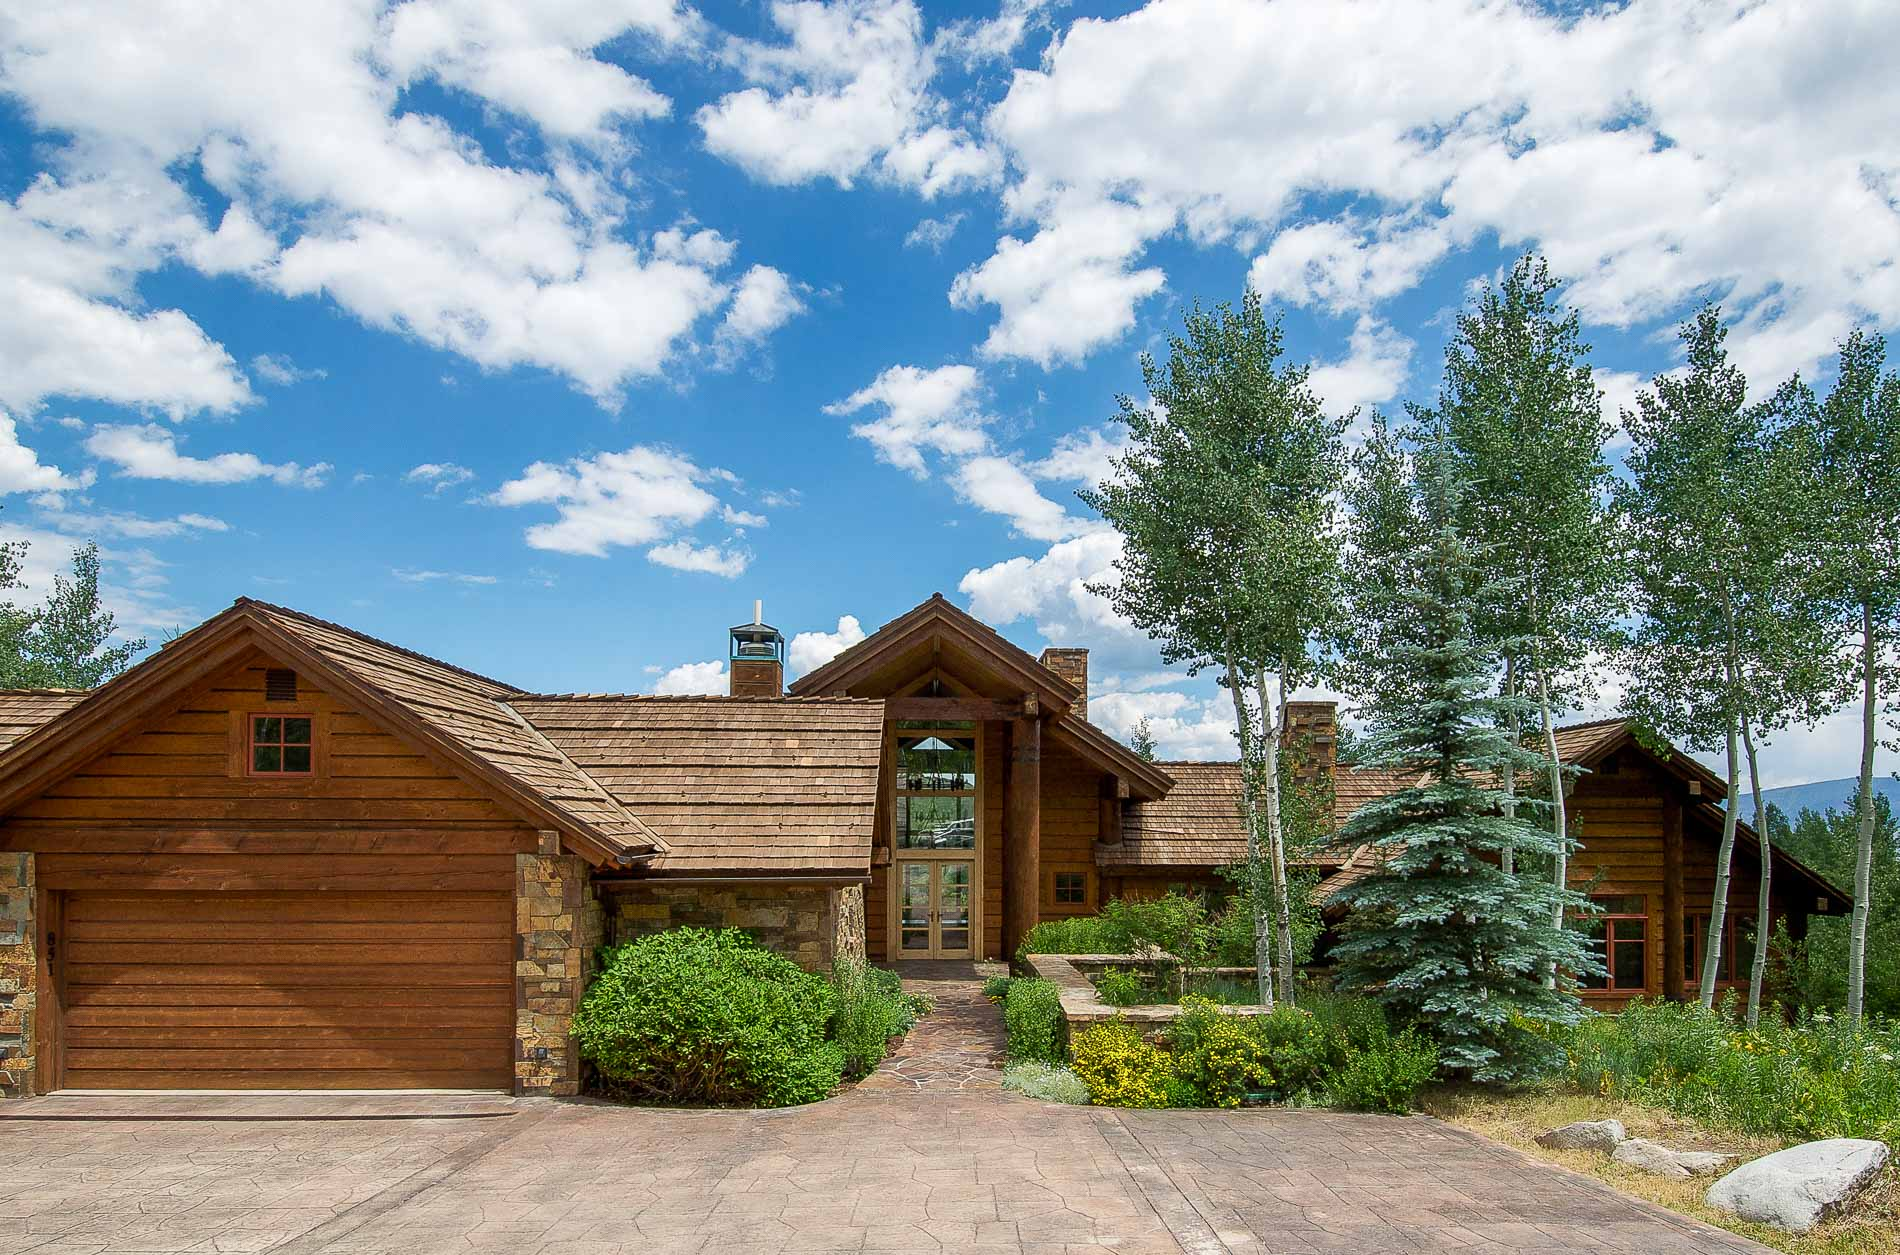 Single Family Home for Sale at Woodrun I Lot 2 851 Wood Road Snowmass Village, Colorado 81615 United States